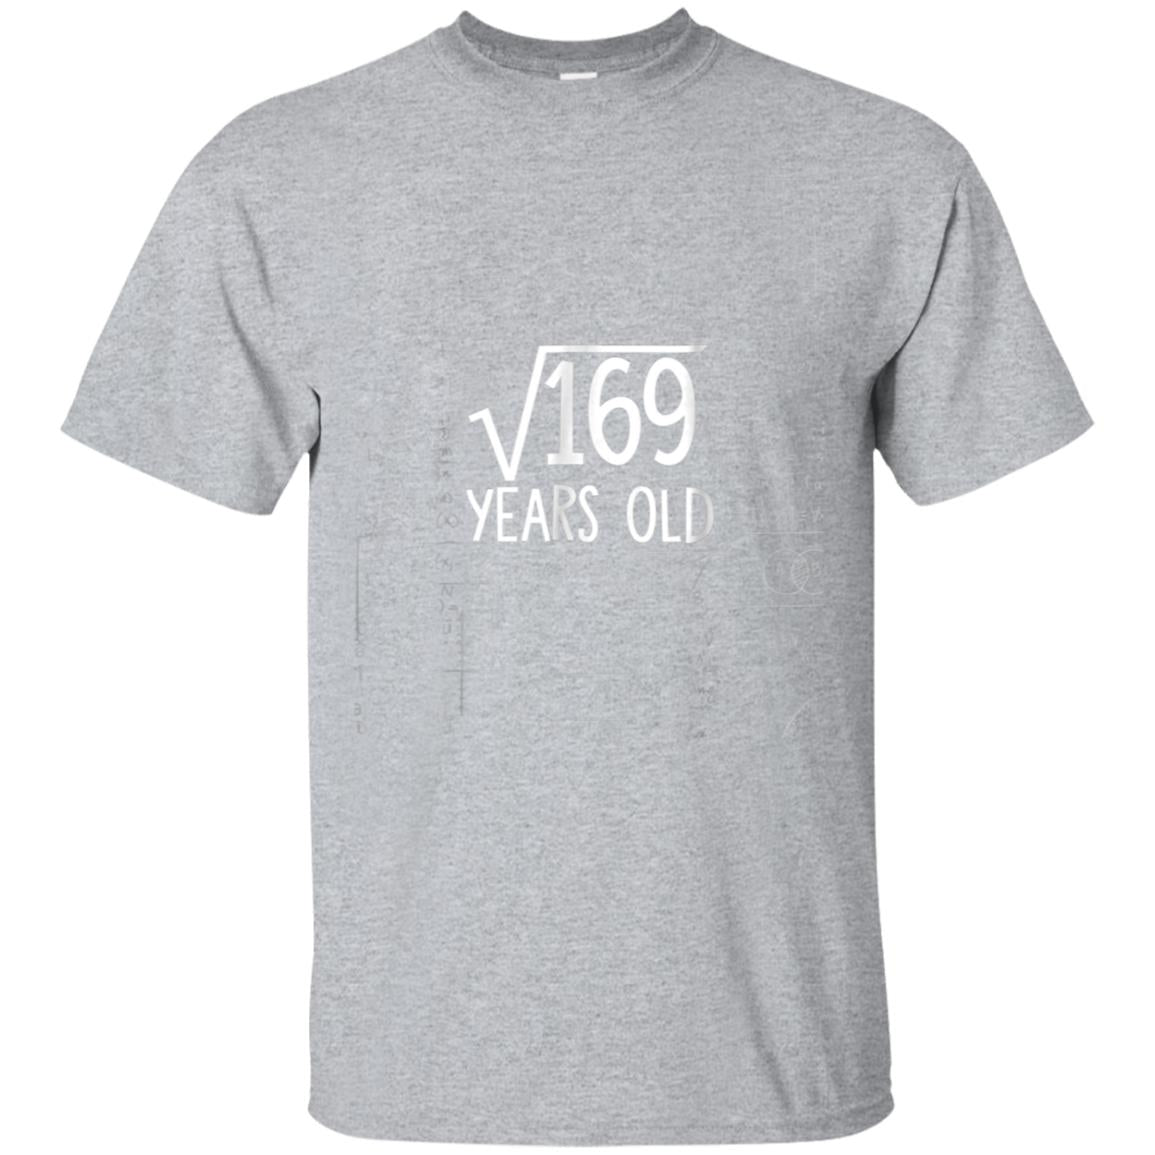 Square Root of 169 13th Birthday 13 Years Old T-Shirt 99promocode